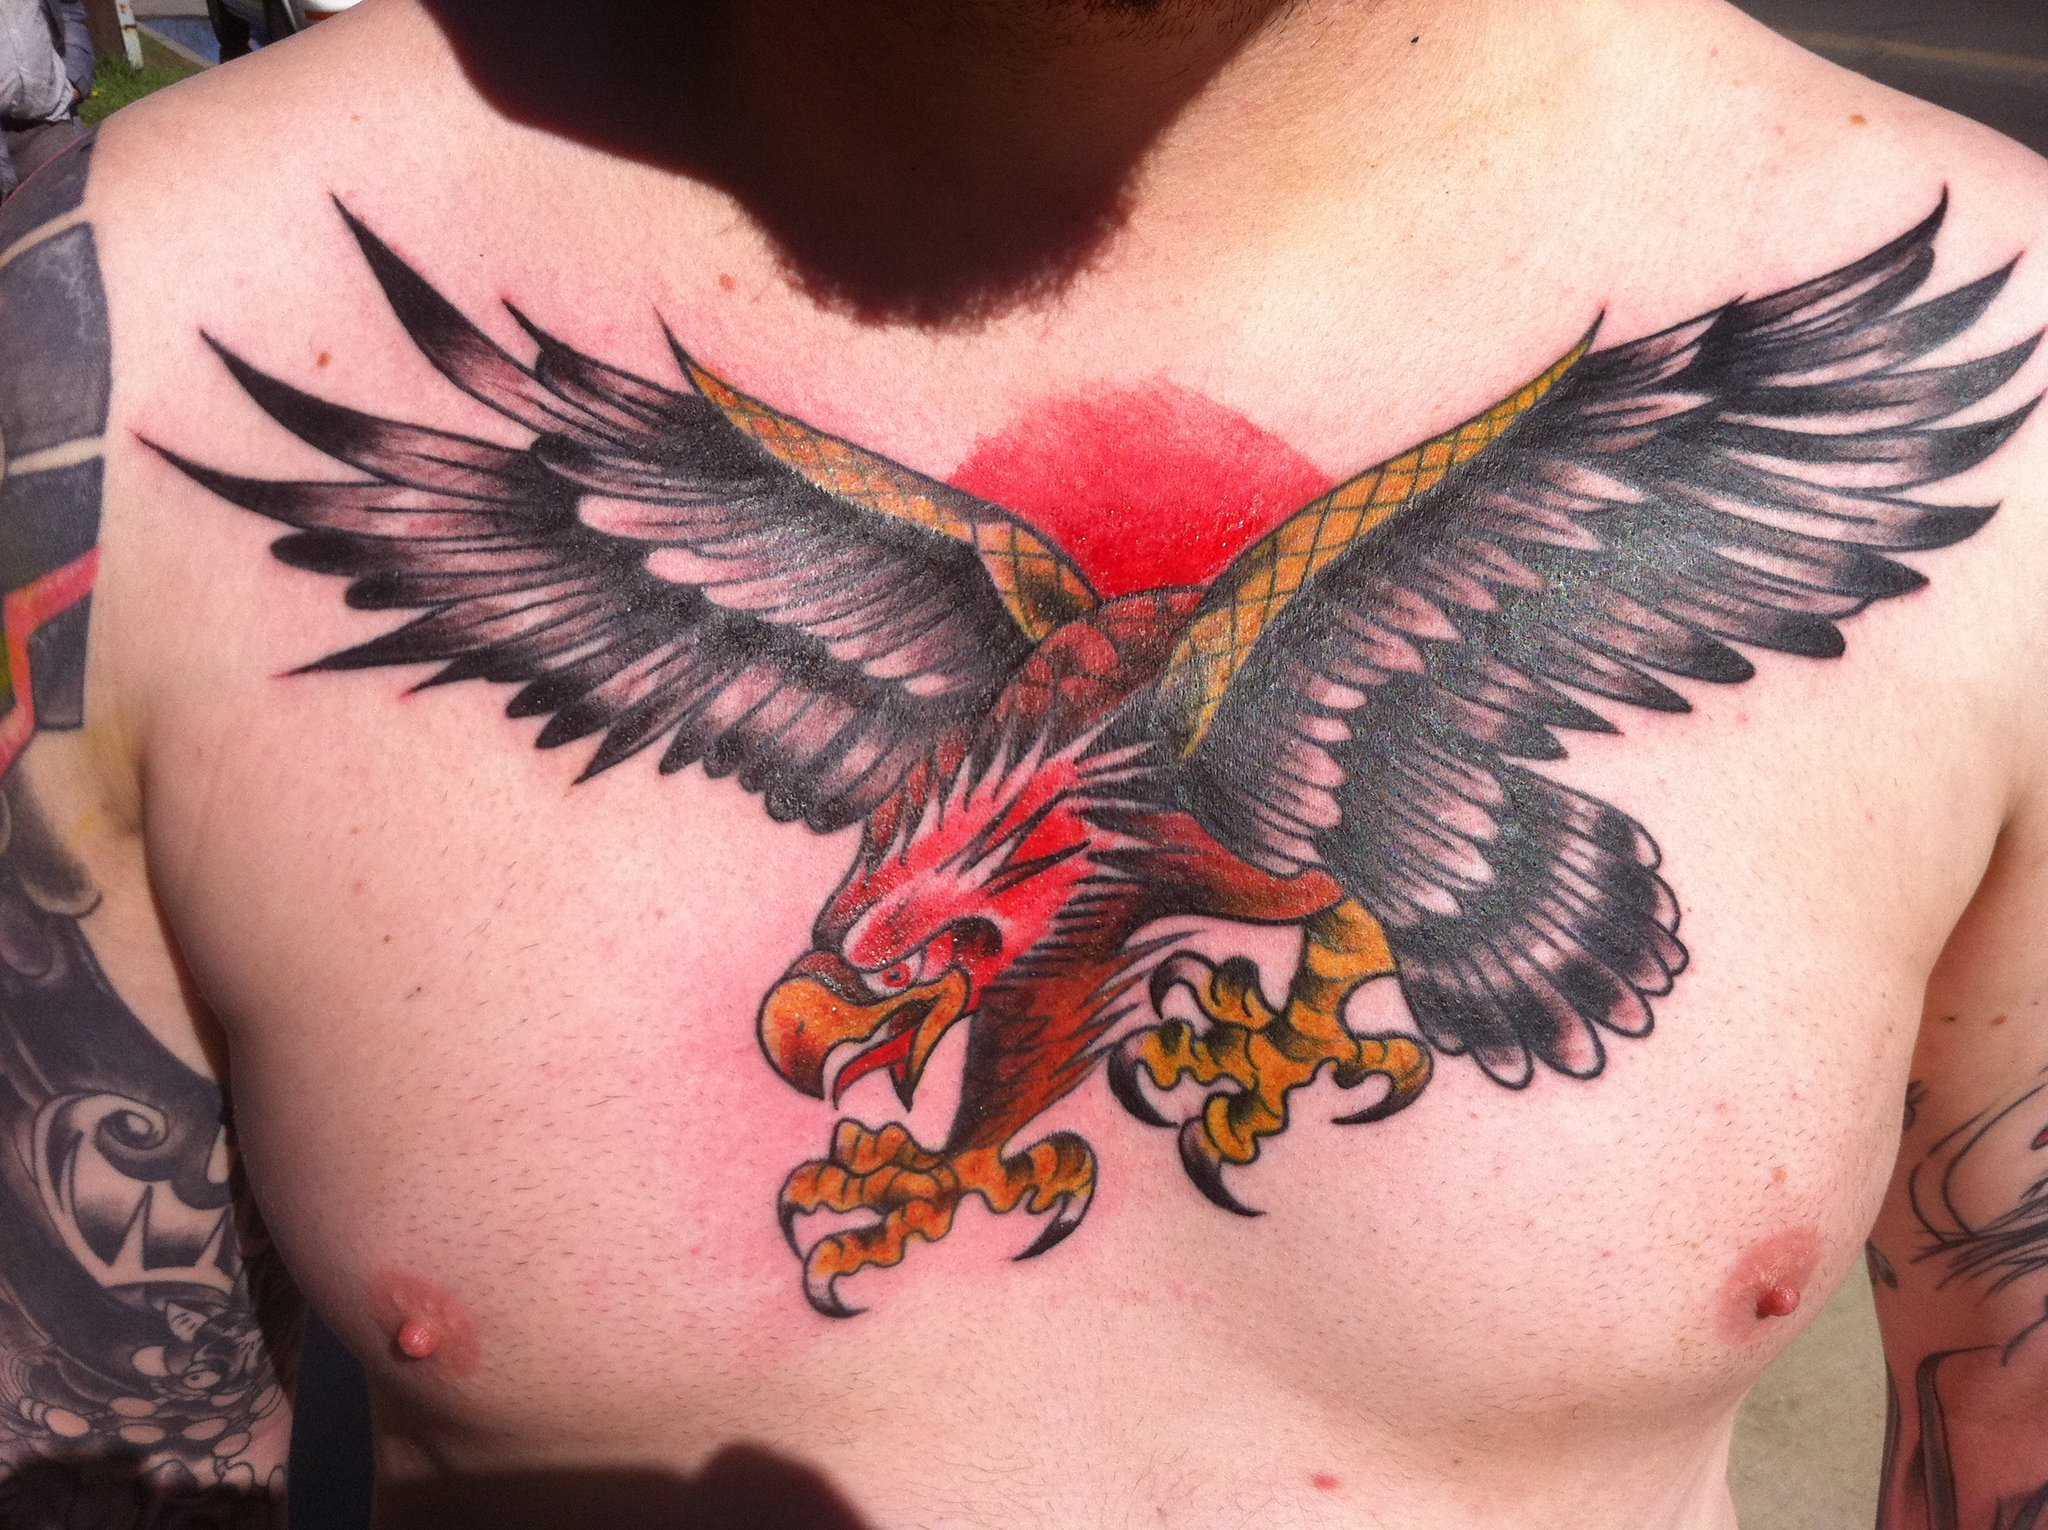 American eagle tattoos high quality photos and flash - Hunter Eagle Tattooed On Man Chest